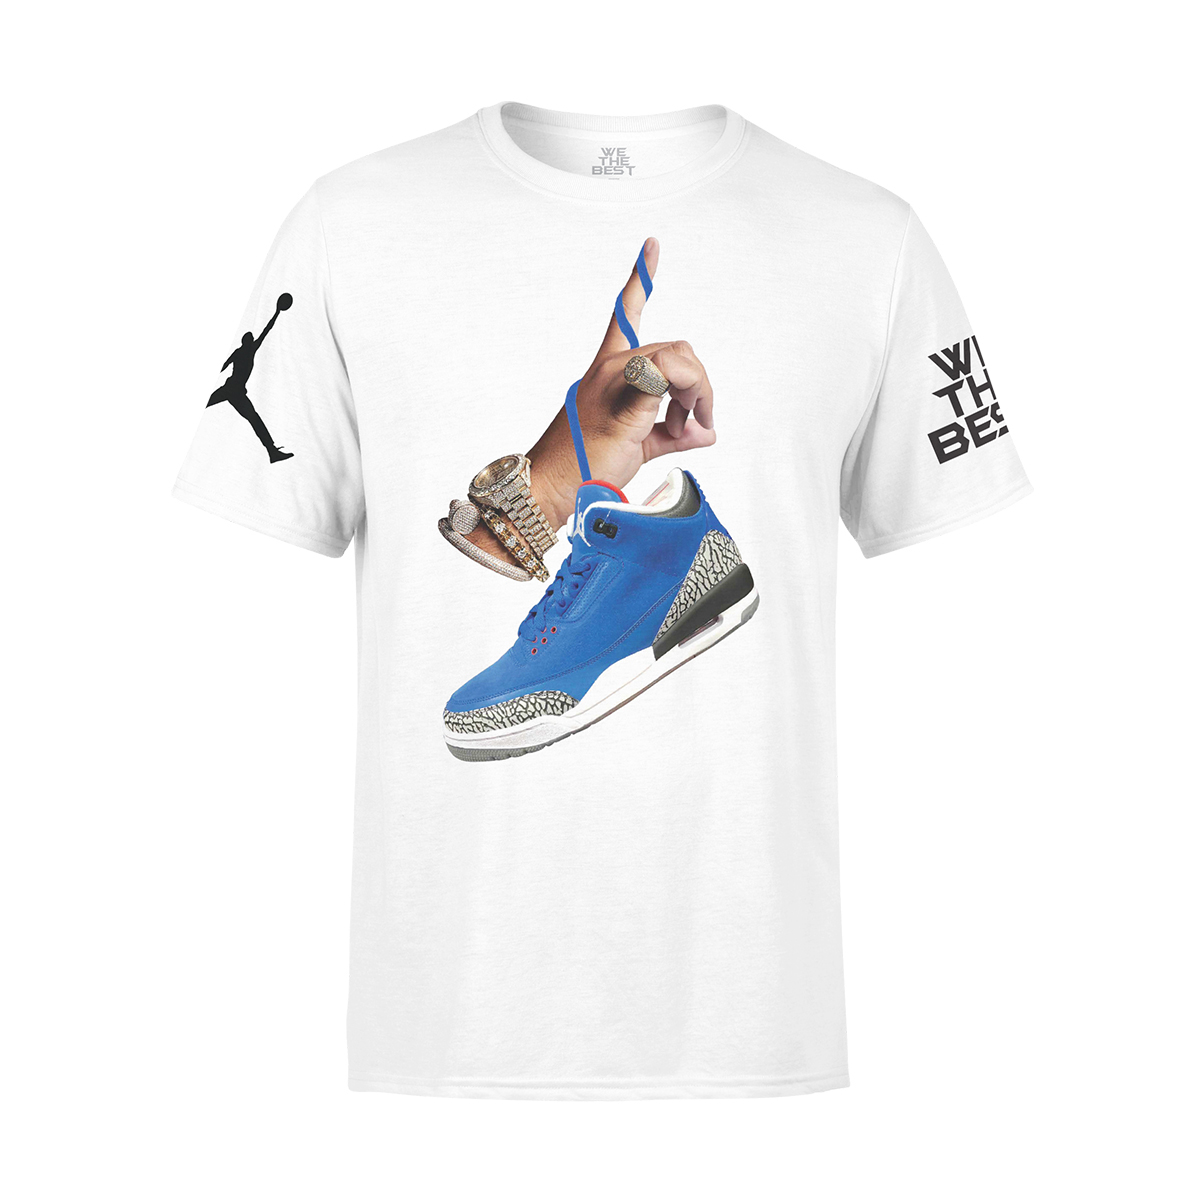 DJ Khaled x Jordan with Suede Sneakers T-shirt - White